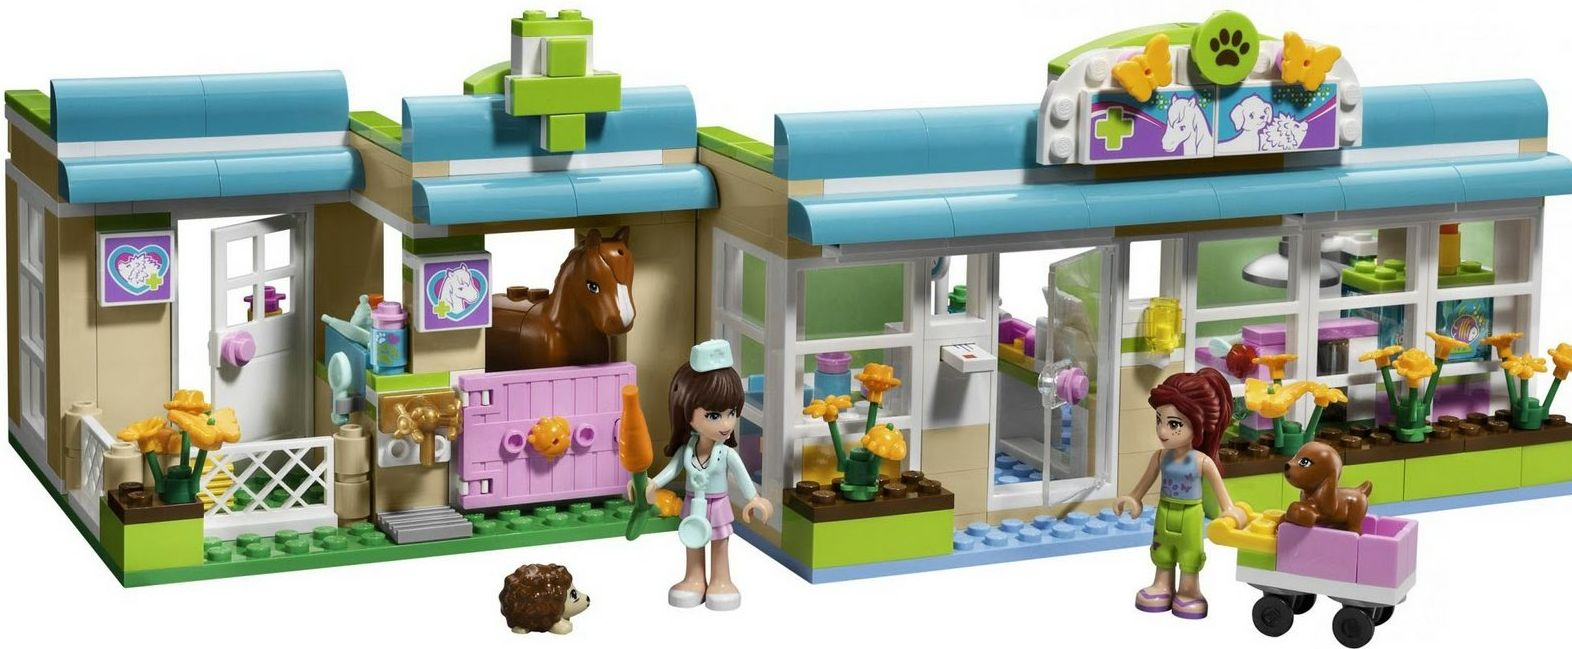 Lego Friends 3188 Heartlake